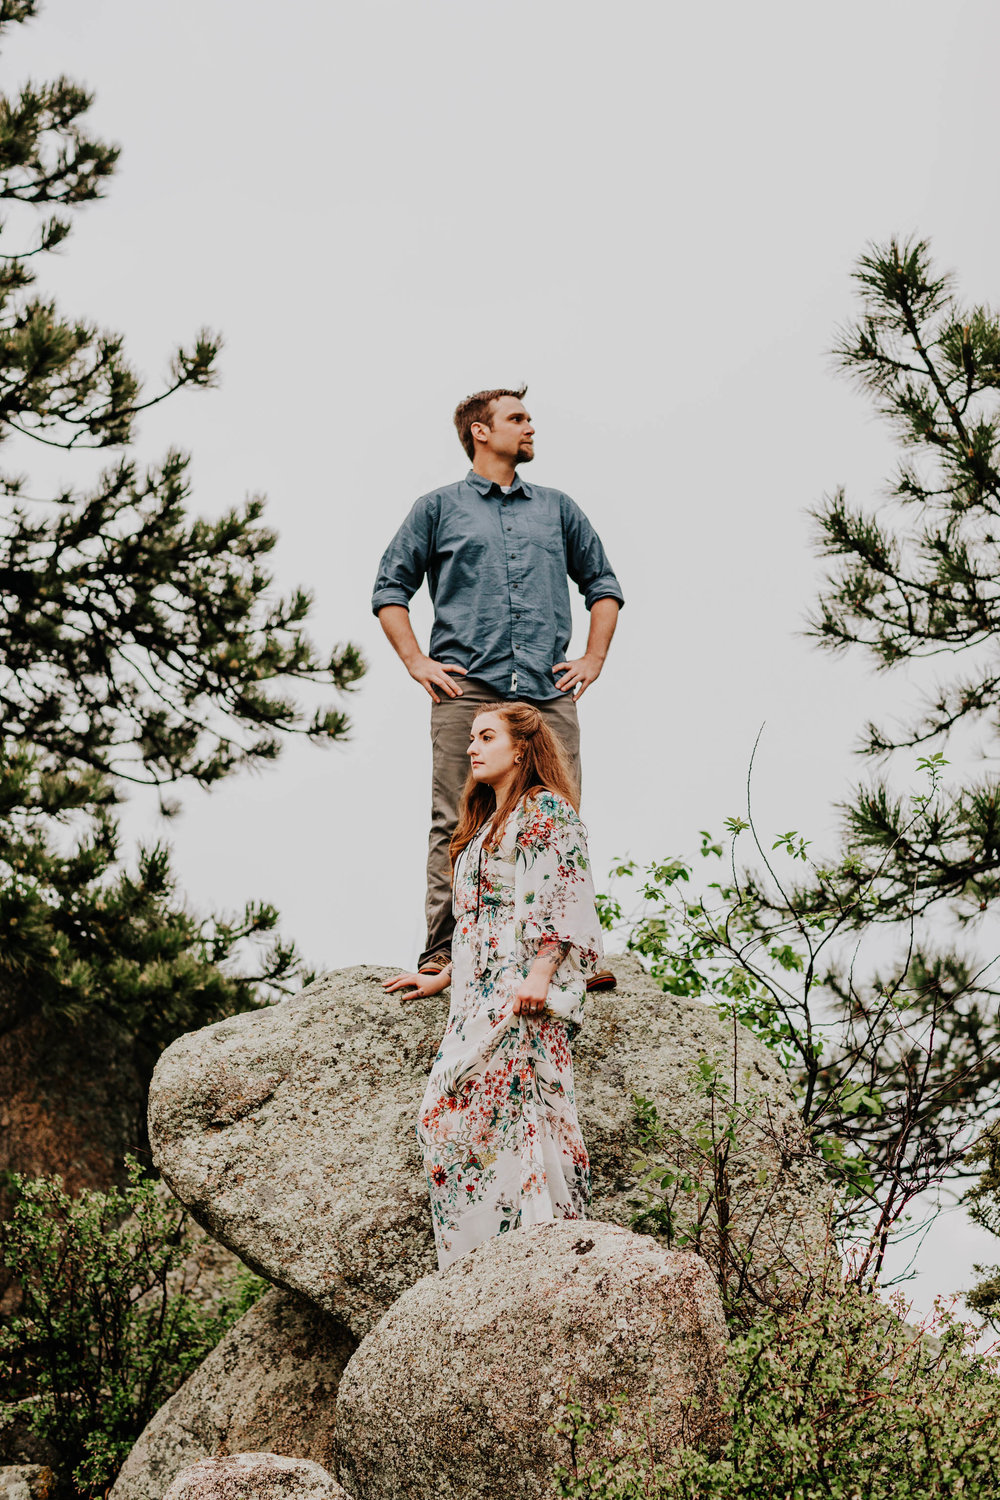 Sheena_Shahangian_Photography_Engagement_Photo_Shoot_Shelby_and_Andrew_Boulder_Colorado-73.jpg